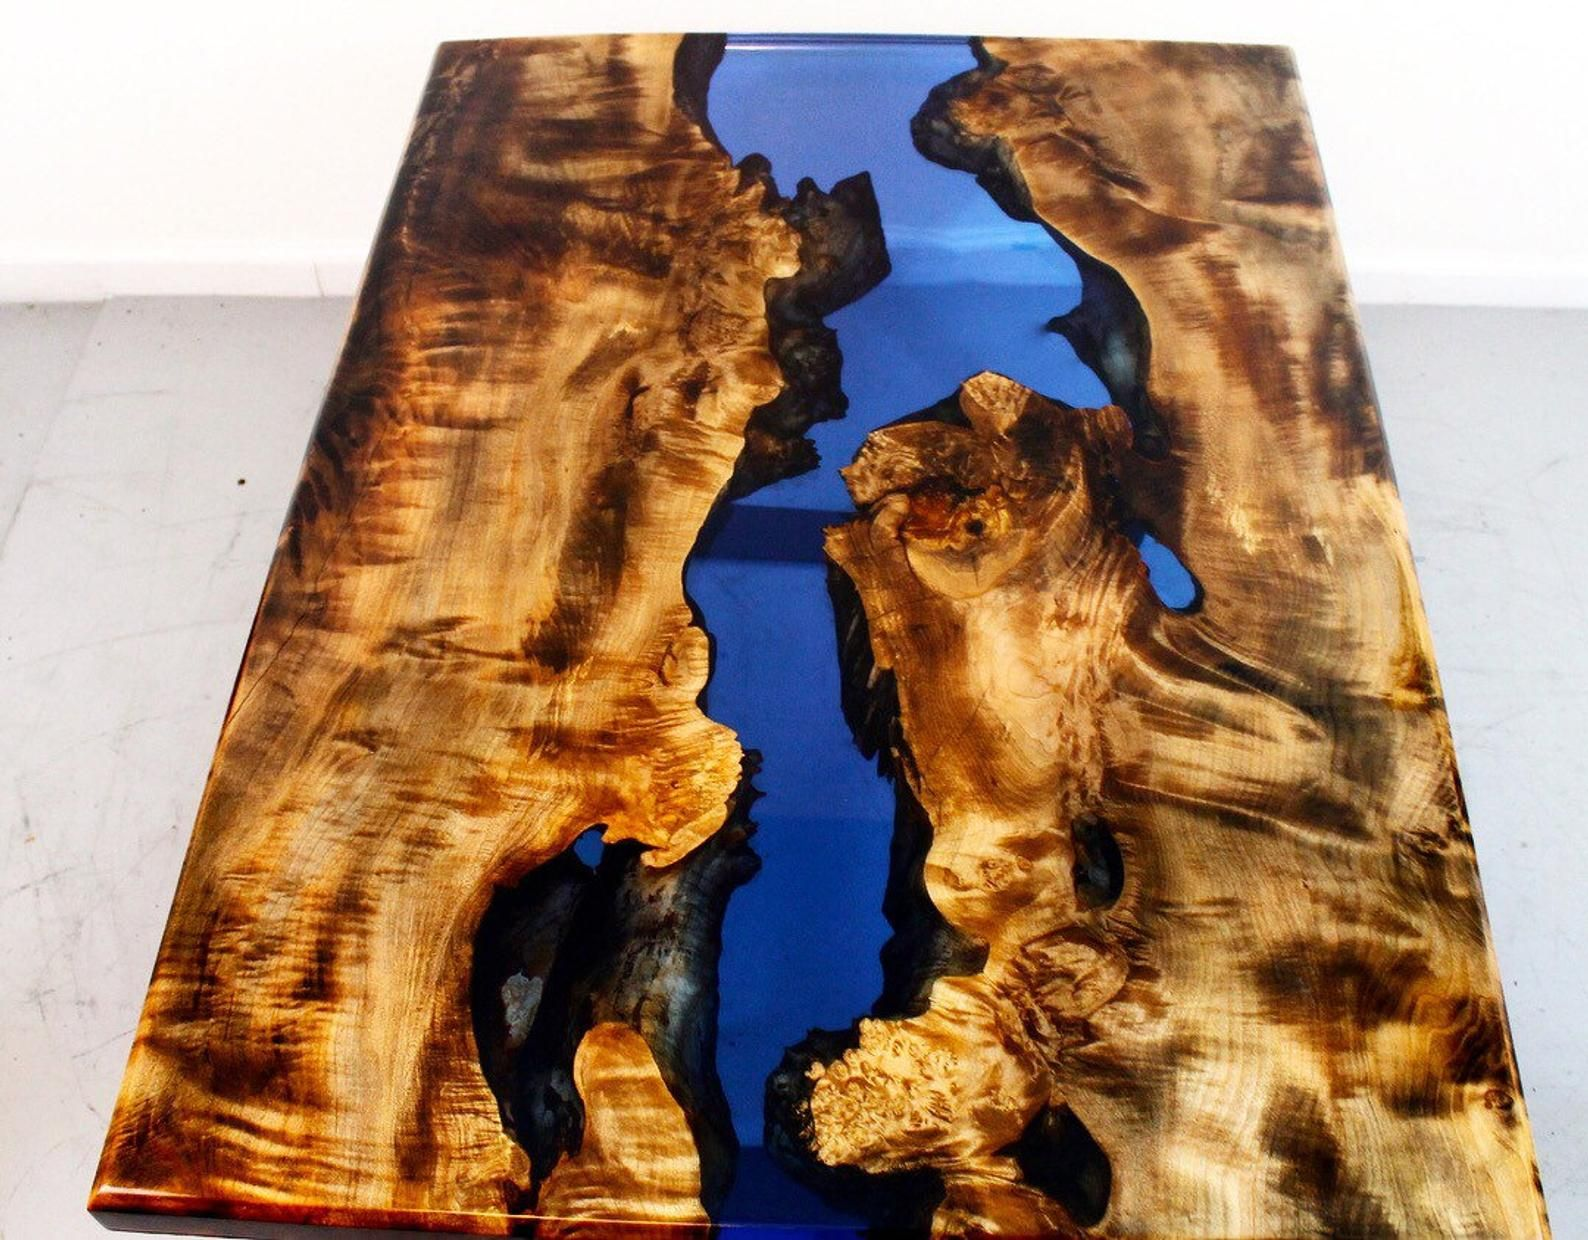 Ebonized maple resin river coffee tables resin table top